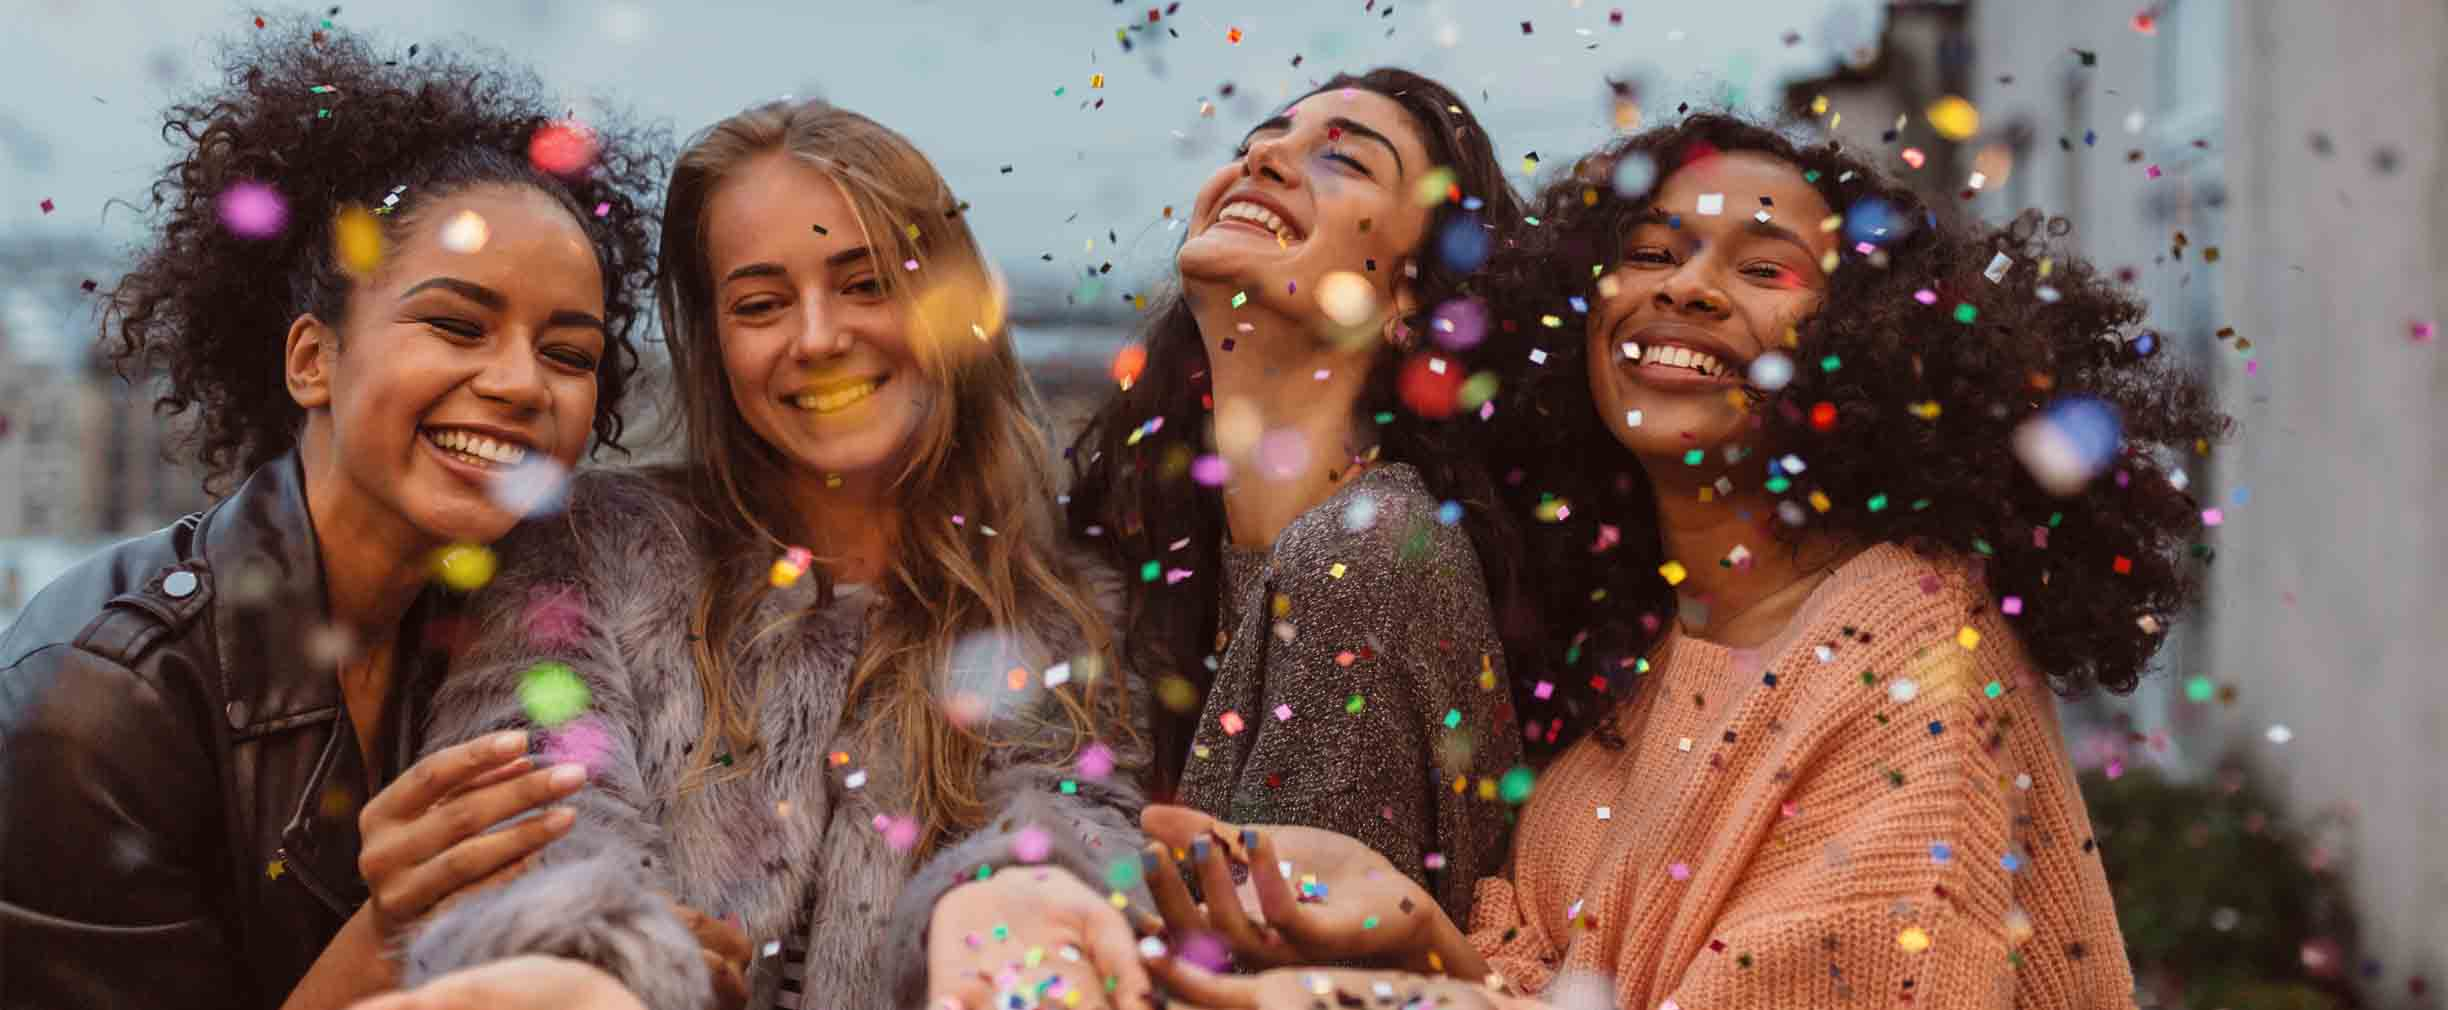 four girls celebrating with confetti